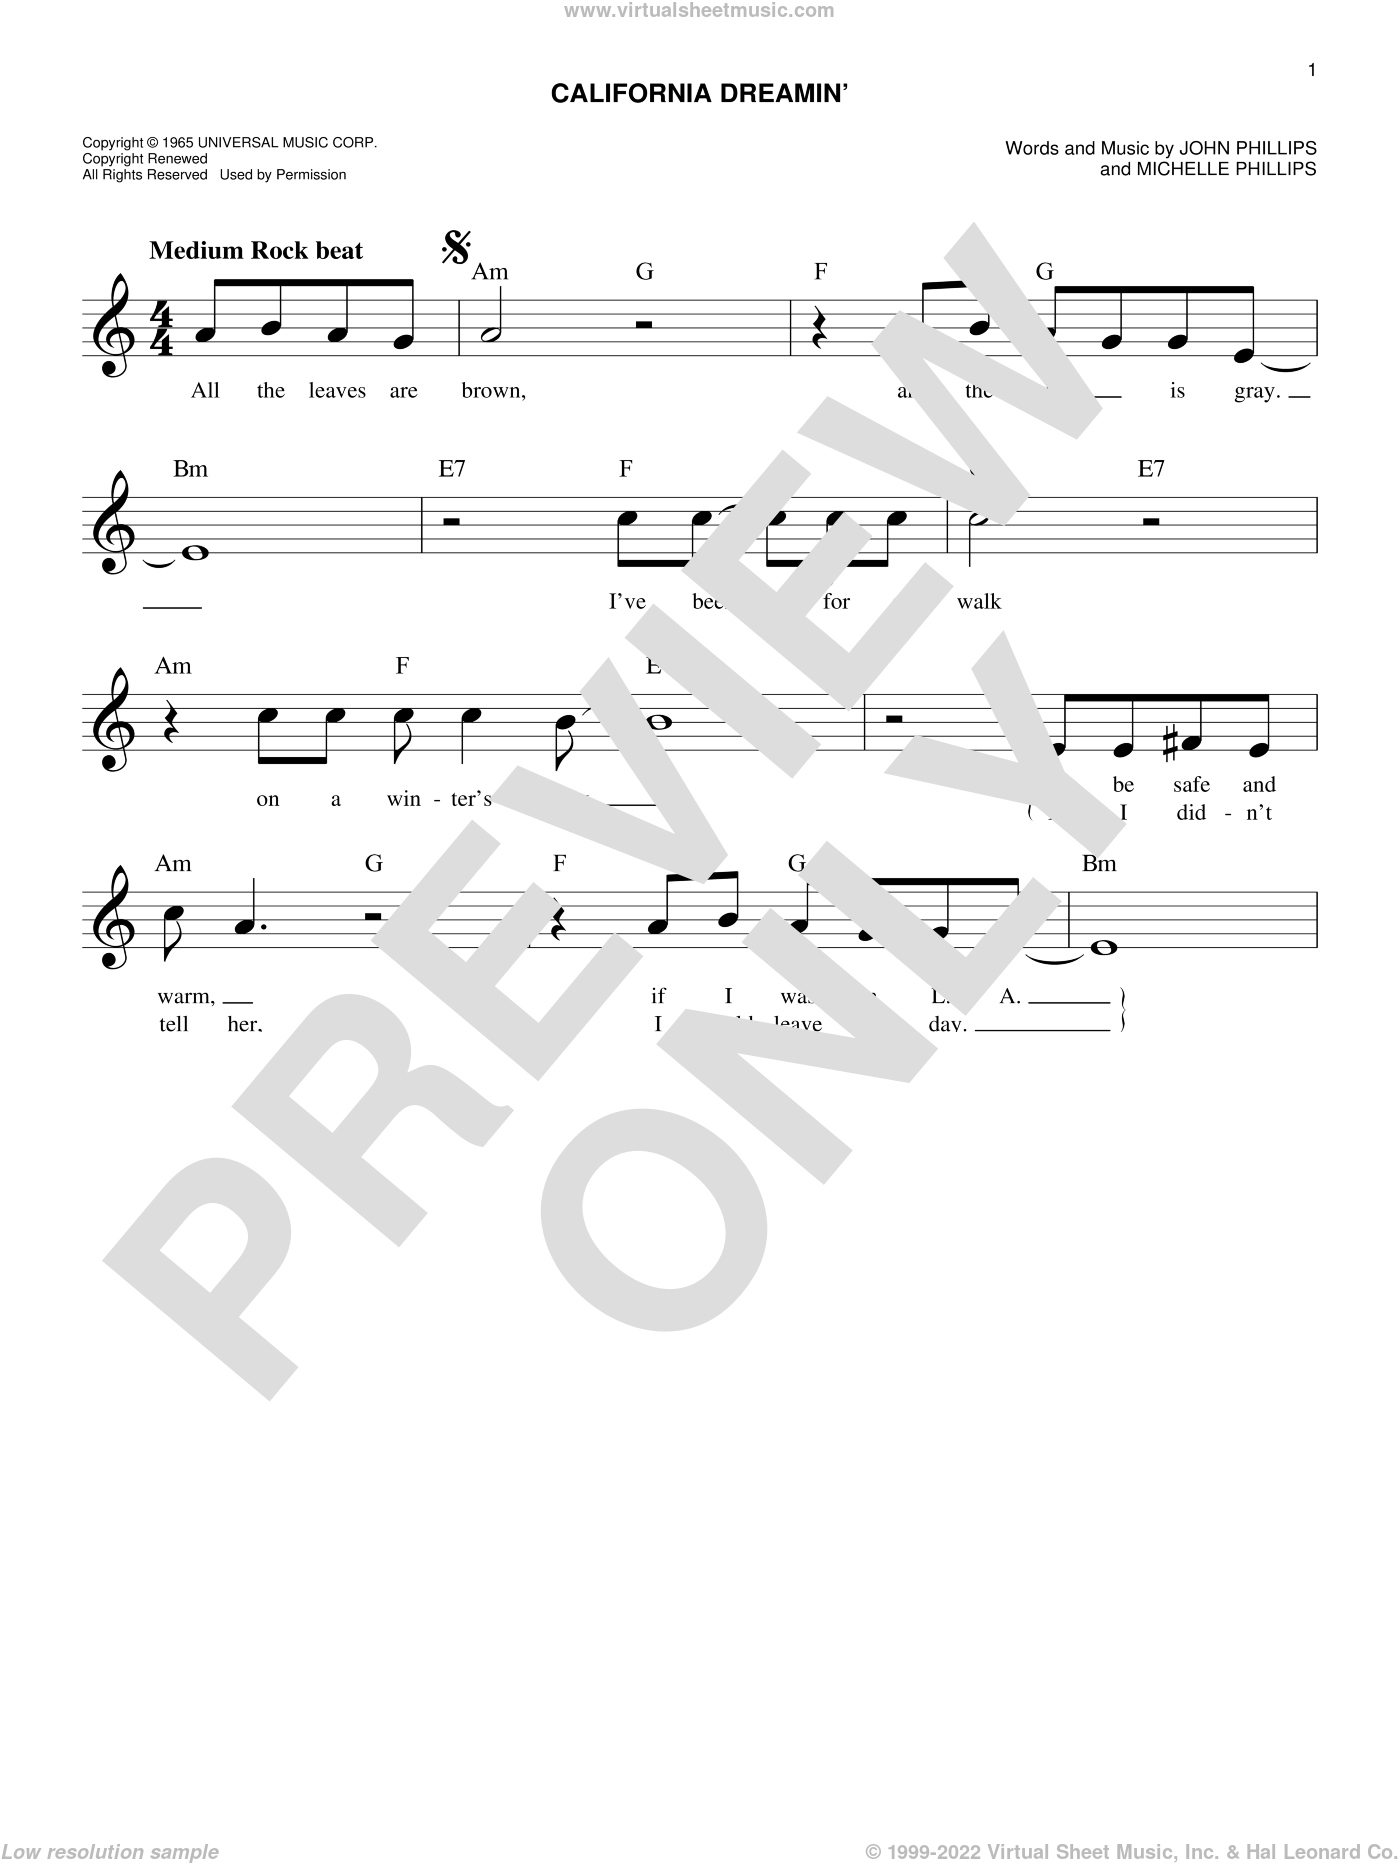 California Dreamin' sheet music for voice and other instruments (fake book) by The Mamas & The Papas, John Phillips and Michelle Phillips, intermediate skill level